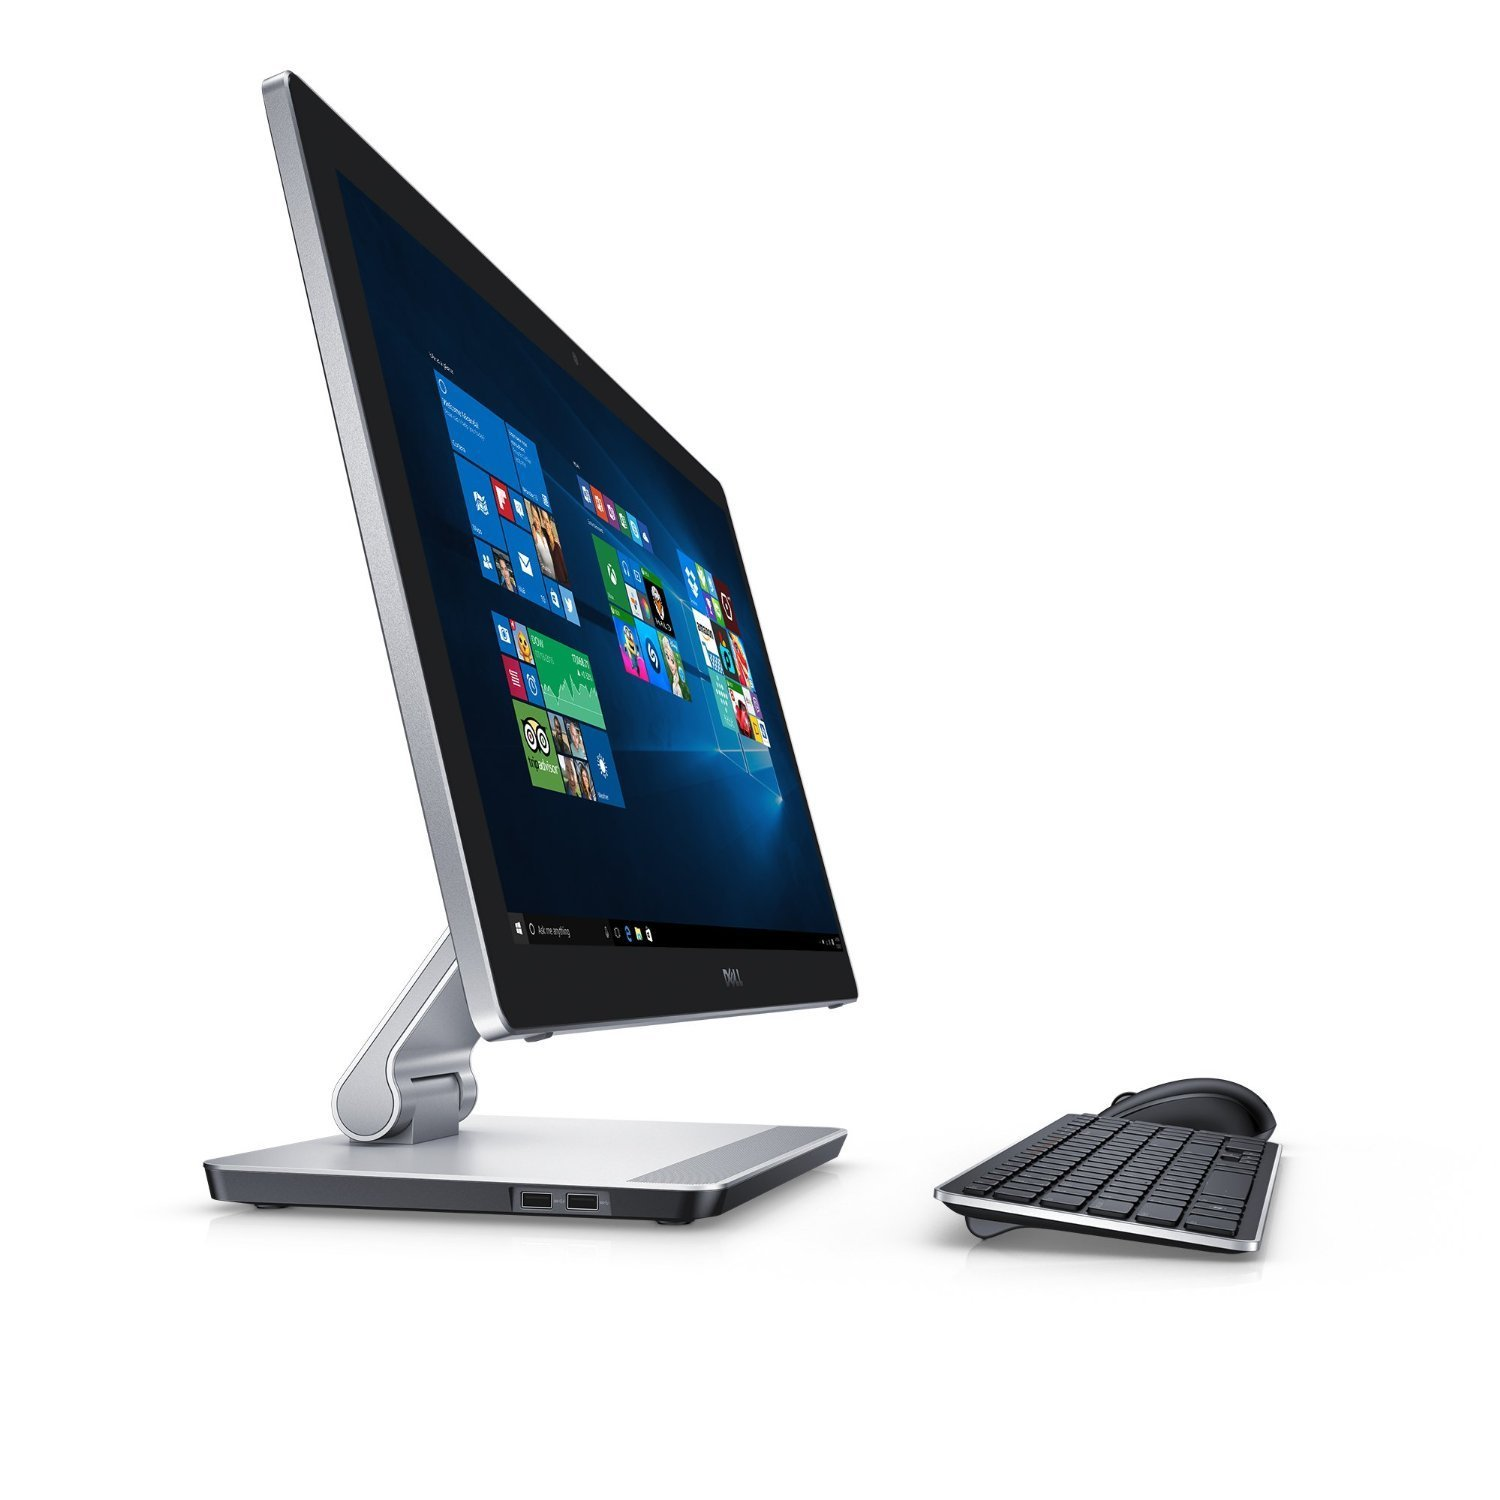 מרענן DELL INSPIRON 24 7000 ALL-IN-ONE Desktop PC - Mochenz Tech LH-77